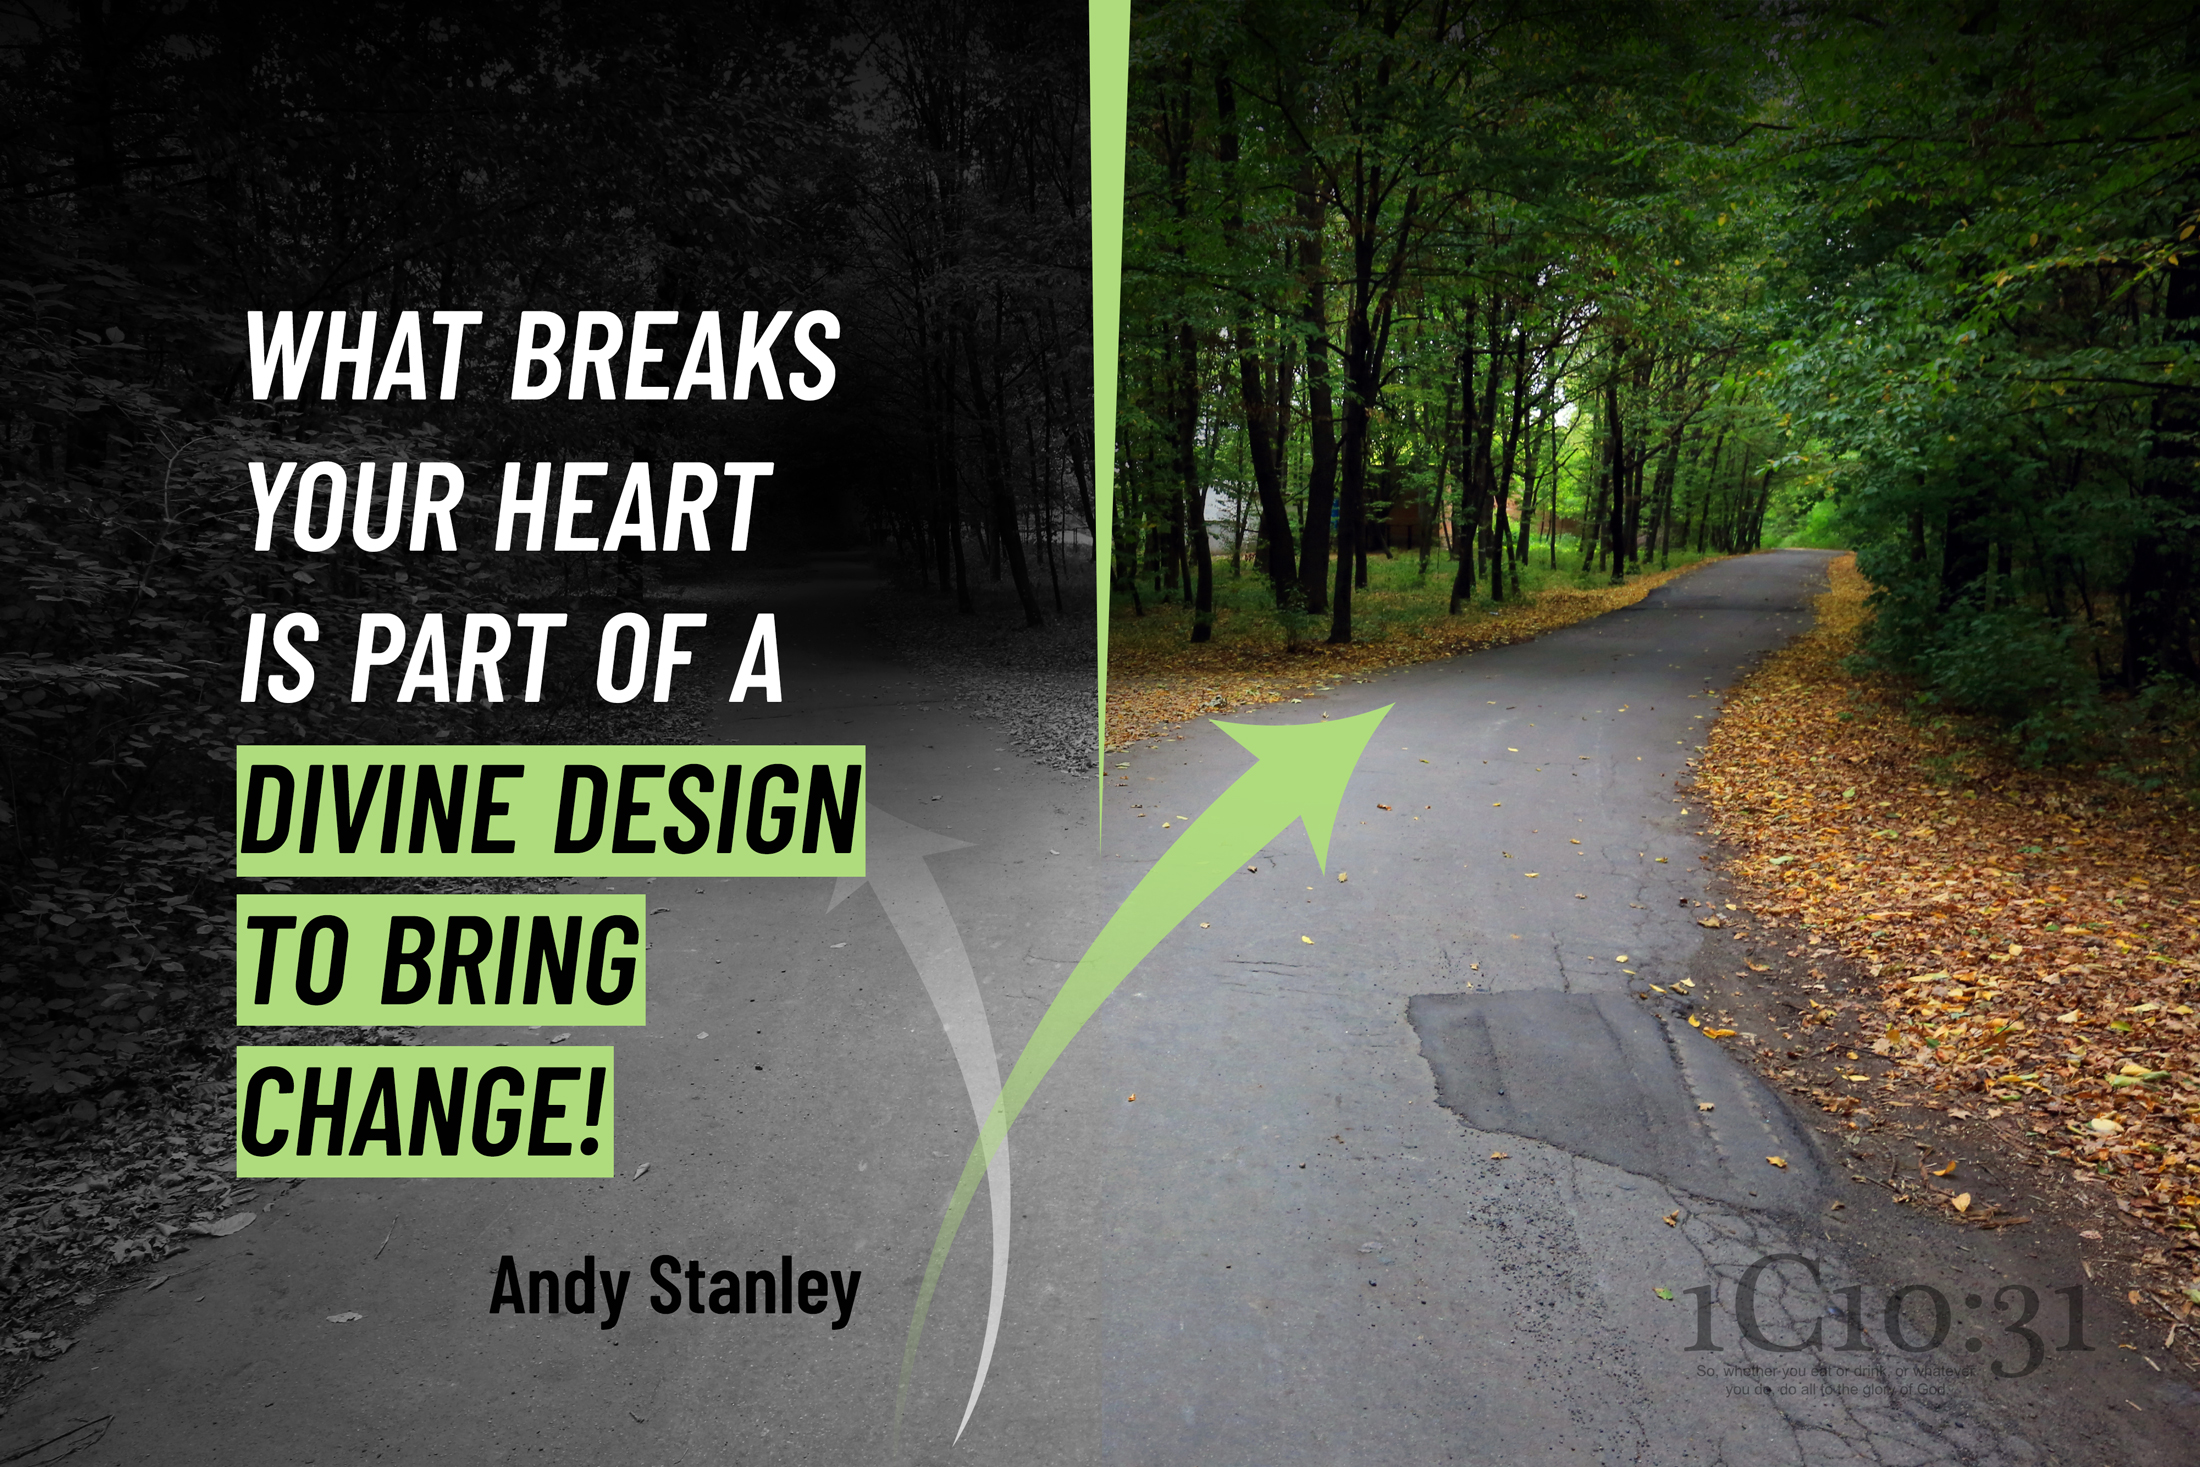 What breaks your heart is part of a divine design to bring change!